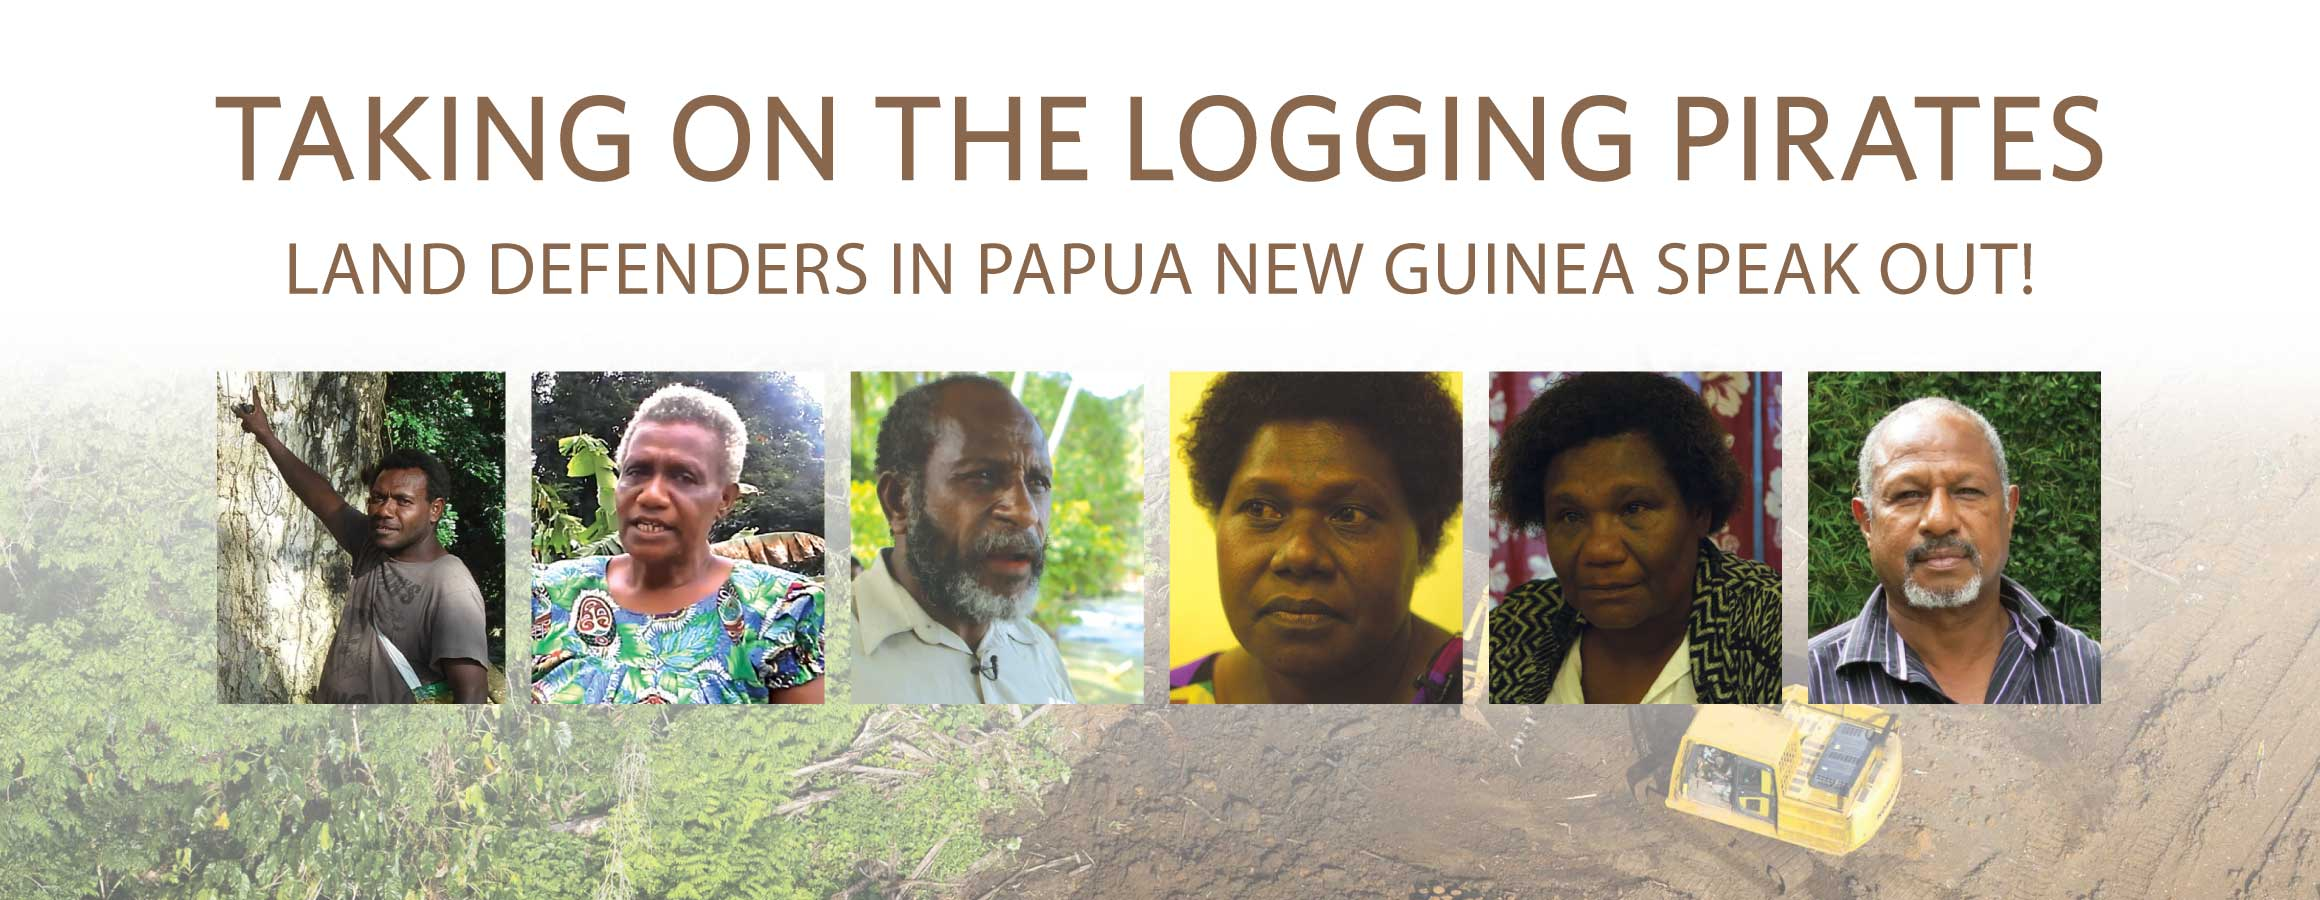 Illegal Logging Papua New Guinea: Taking On the Logging Pirates Cover